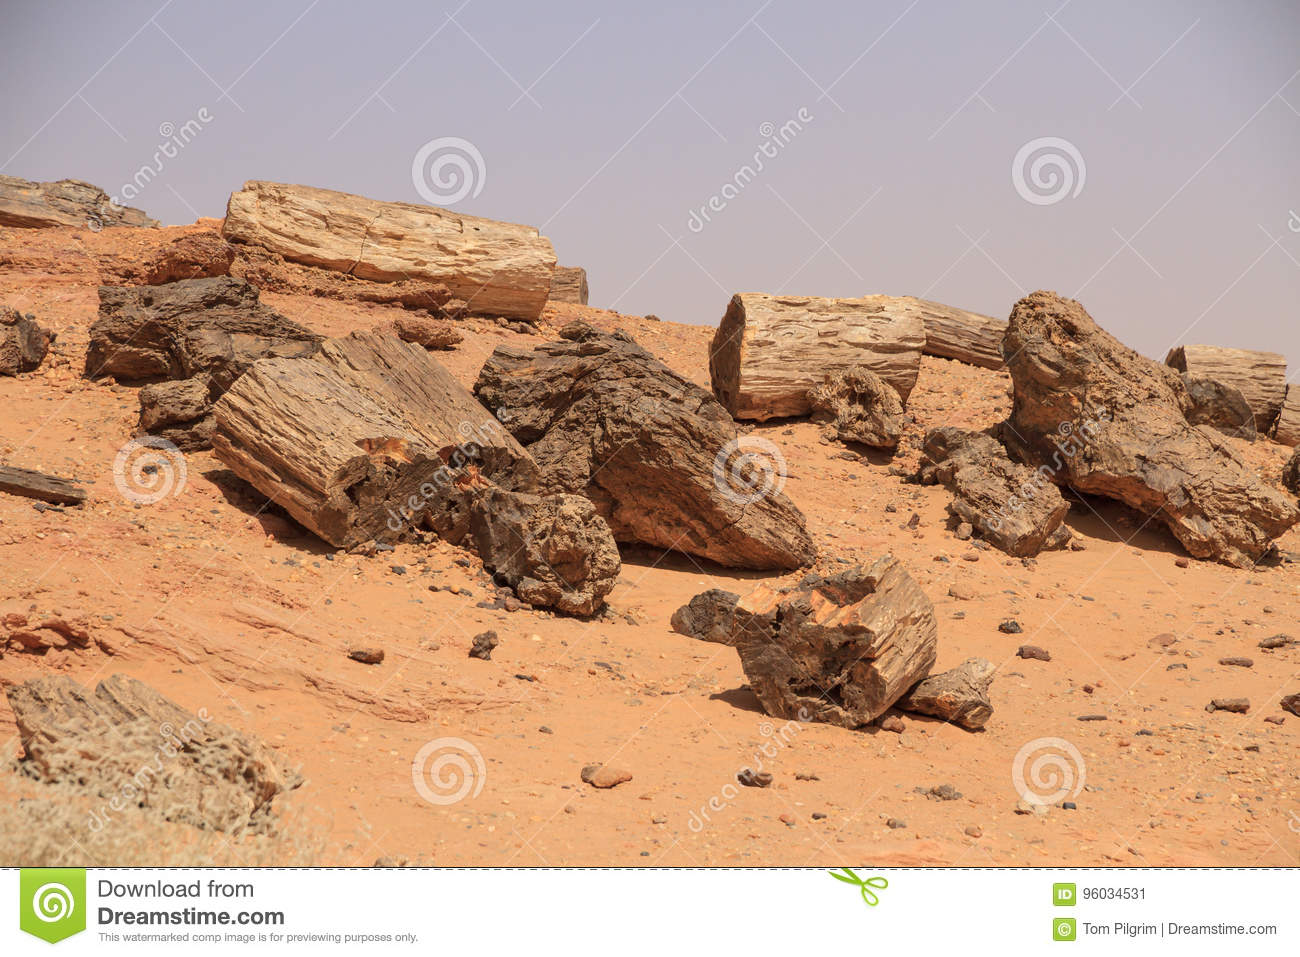 Petrified trees in Sudan